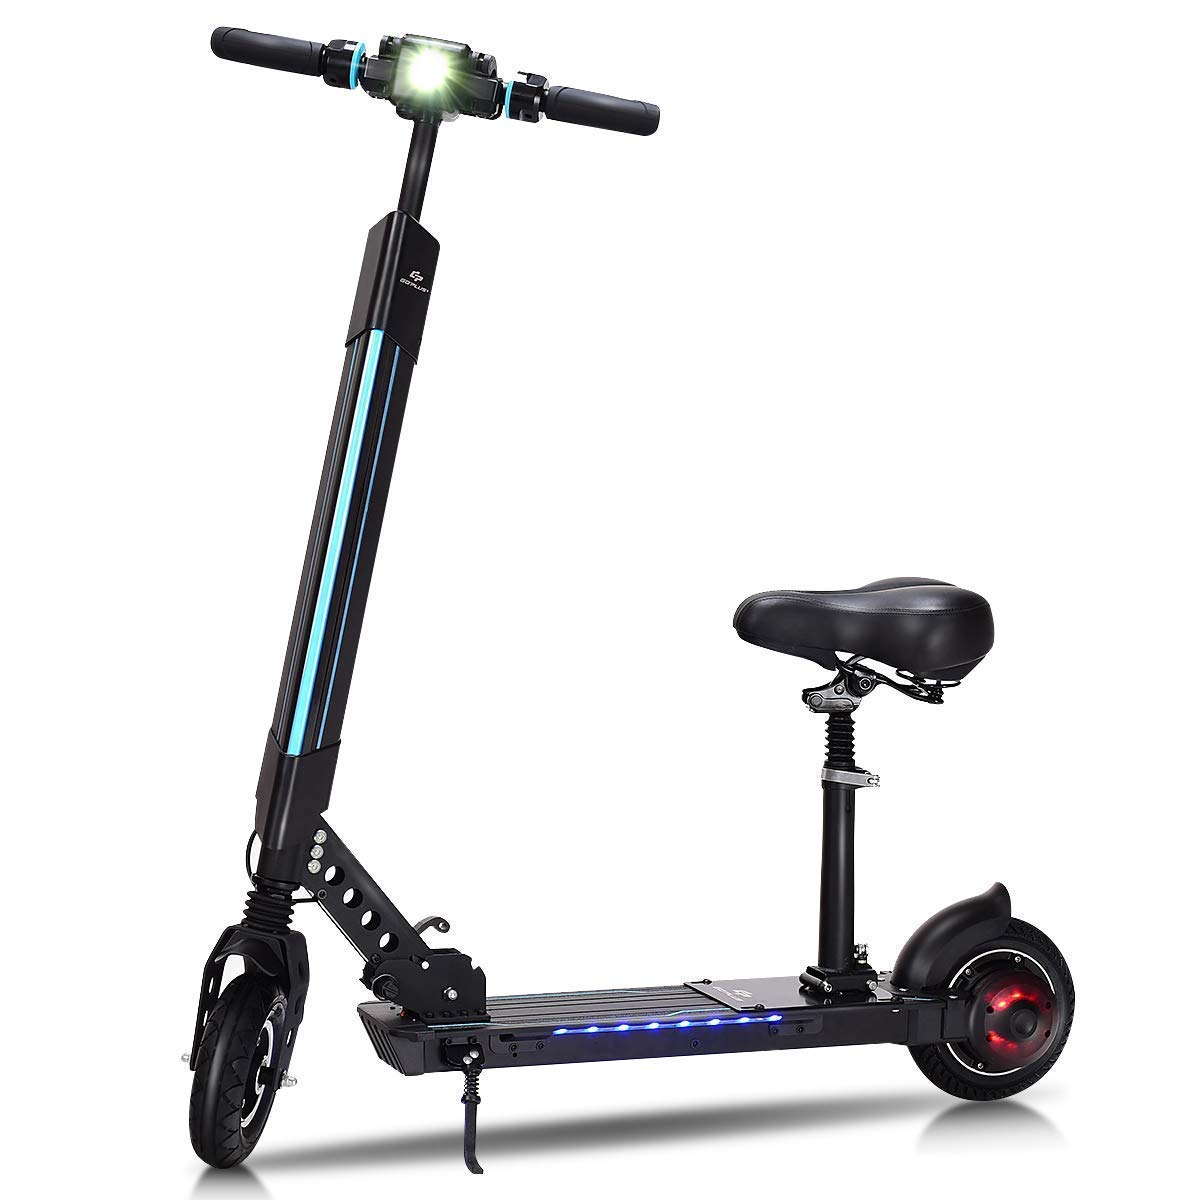 Goplus Foldable Electric Scooter, Adjustable Kick Scooter, Speed Up to 15.5MPH - 12.5 Mile Range of Riding w/ 5.2Ah 36V Lithium Battery, Suitable for Riders Under 220lbs